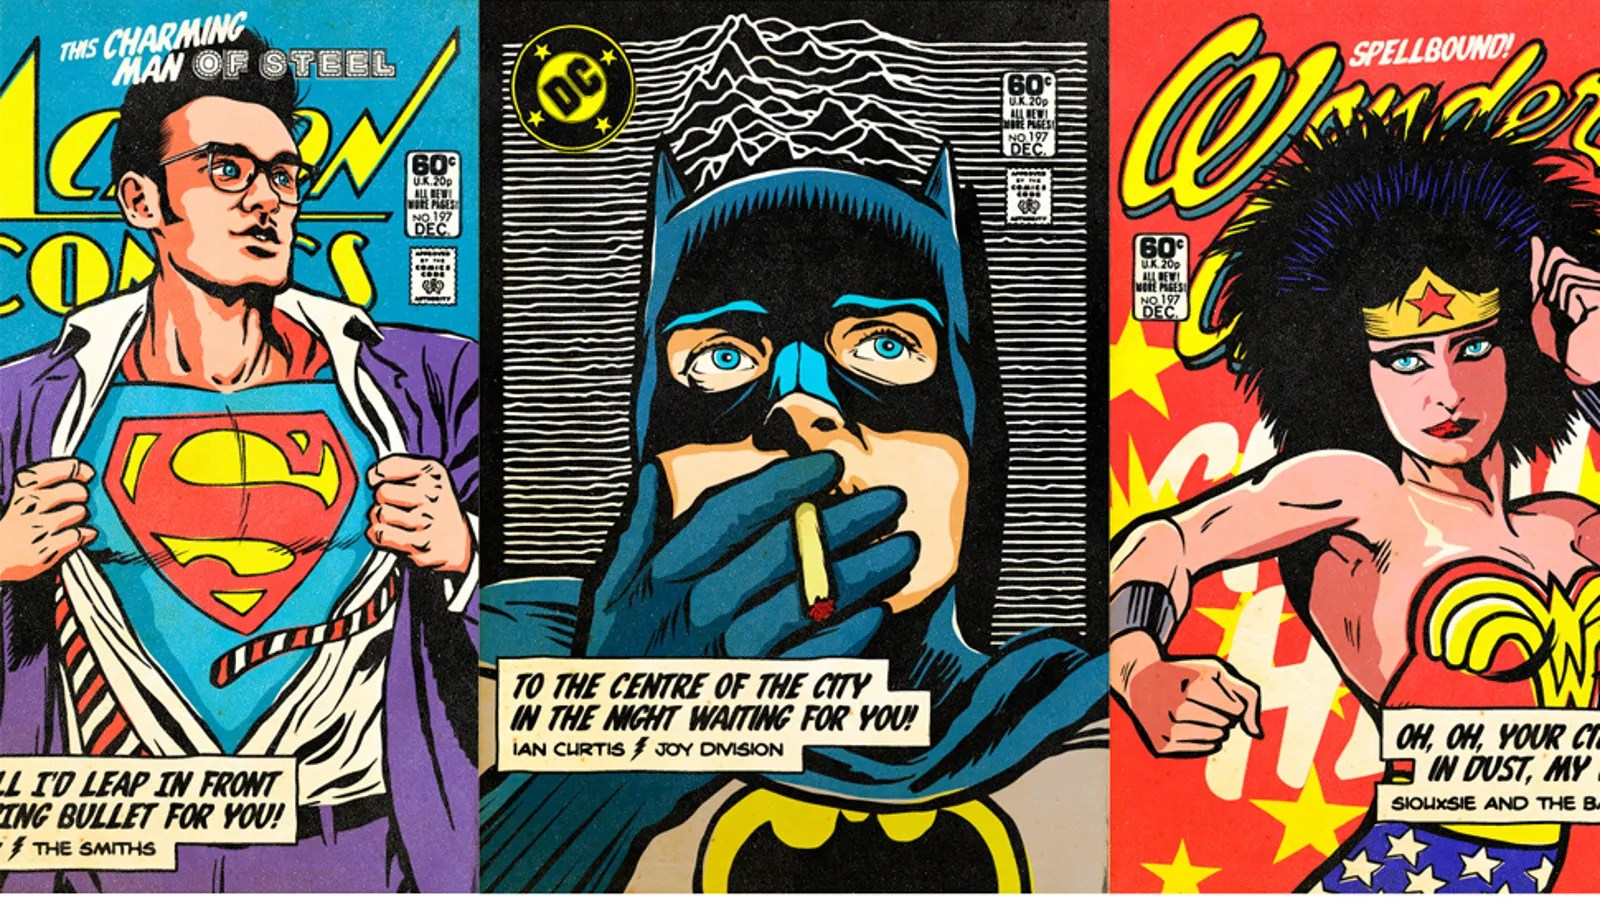 The Smiths Wallpaper Iphone Post Punk New Wave Icons As Super Heroes